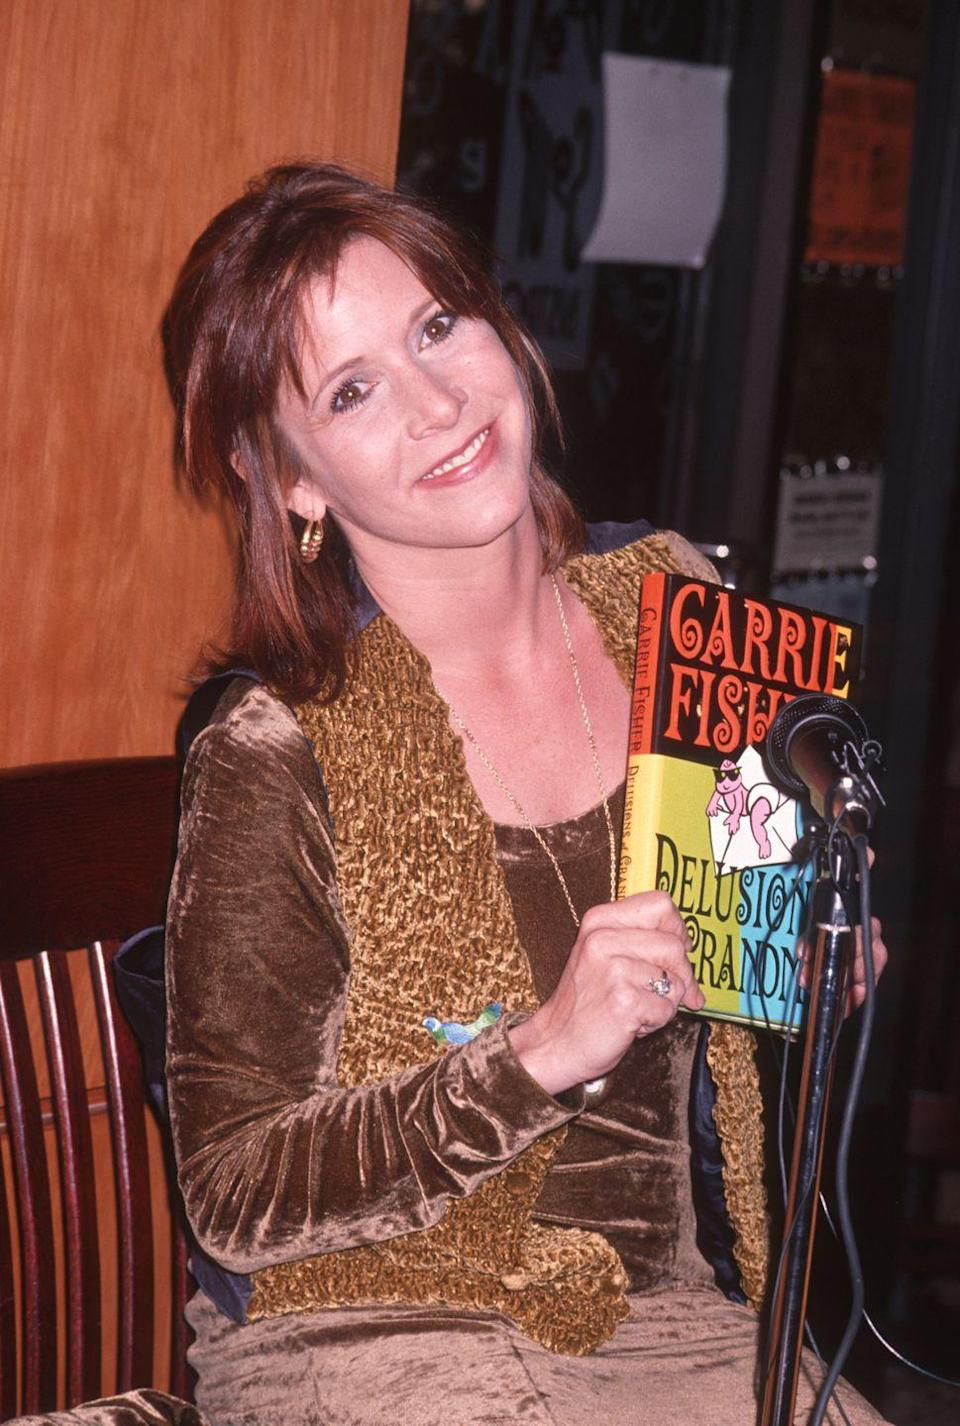 "<p>Shortly after her daughter's birth, the actress-turned-novelist churned out another best-selling novel, which was loosely based on her life. Here, Carrie is seen at a book signing for <em><a href=""https://www.amazon.com/Delusions-Grandma-Carrie-Fisher/dp/150113681X?tag=syn-yahoo-20&ascsubtag=%5Bartid%7C10055.g.32222003%5Bsrc%7Cyahoo-us"" rel=""nofollow noopener"" target=""_blank"" data-ylk=""slk:Delusions of Grandma"" class=""link rapid-noclick-resp"">Delusions of Grandma</a>, </em>which was released in 1993. </p>"